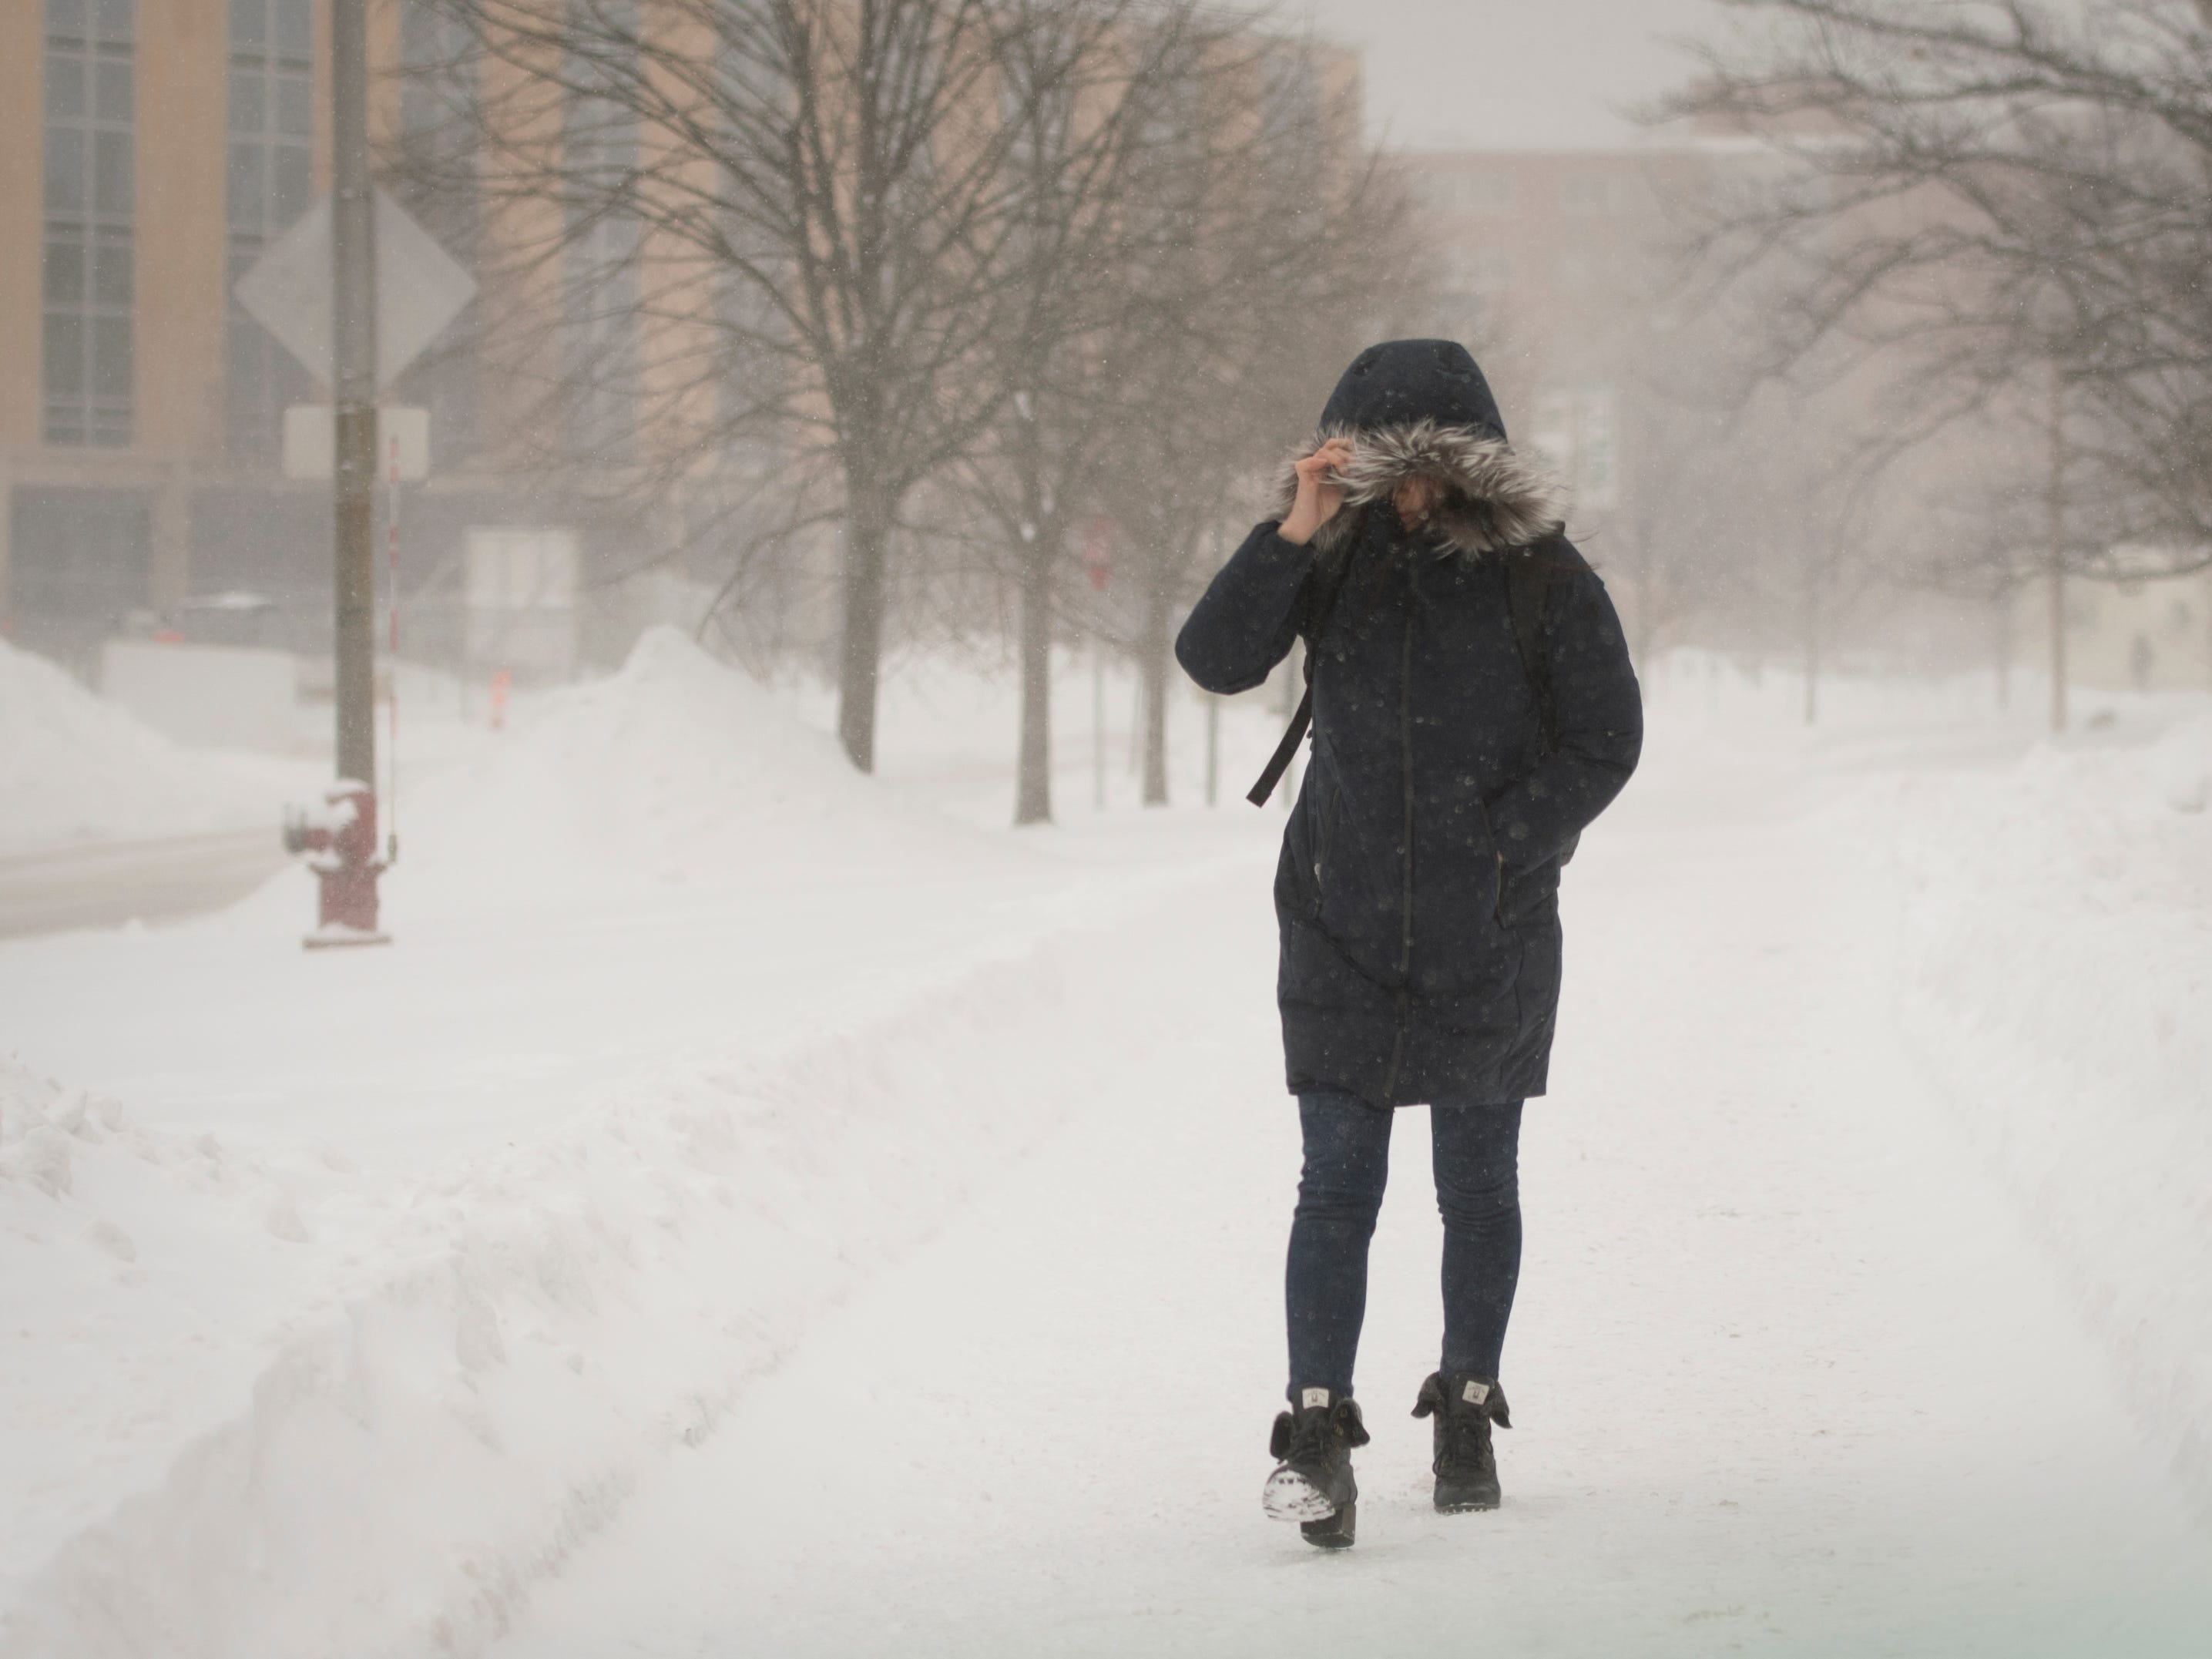 Despite sub-zero windchills, people walk on the campus of Michigan State University Tuesday, Jan. 29, 2019, in East Lansing, Michigan.  MSU has called off classes tommorow due to bitter temperatures.  [USA Today Network/Matthew Dae Smith/Lansing State Journal]